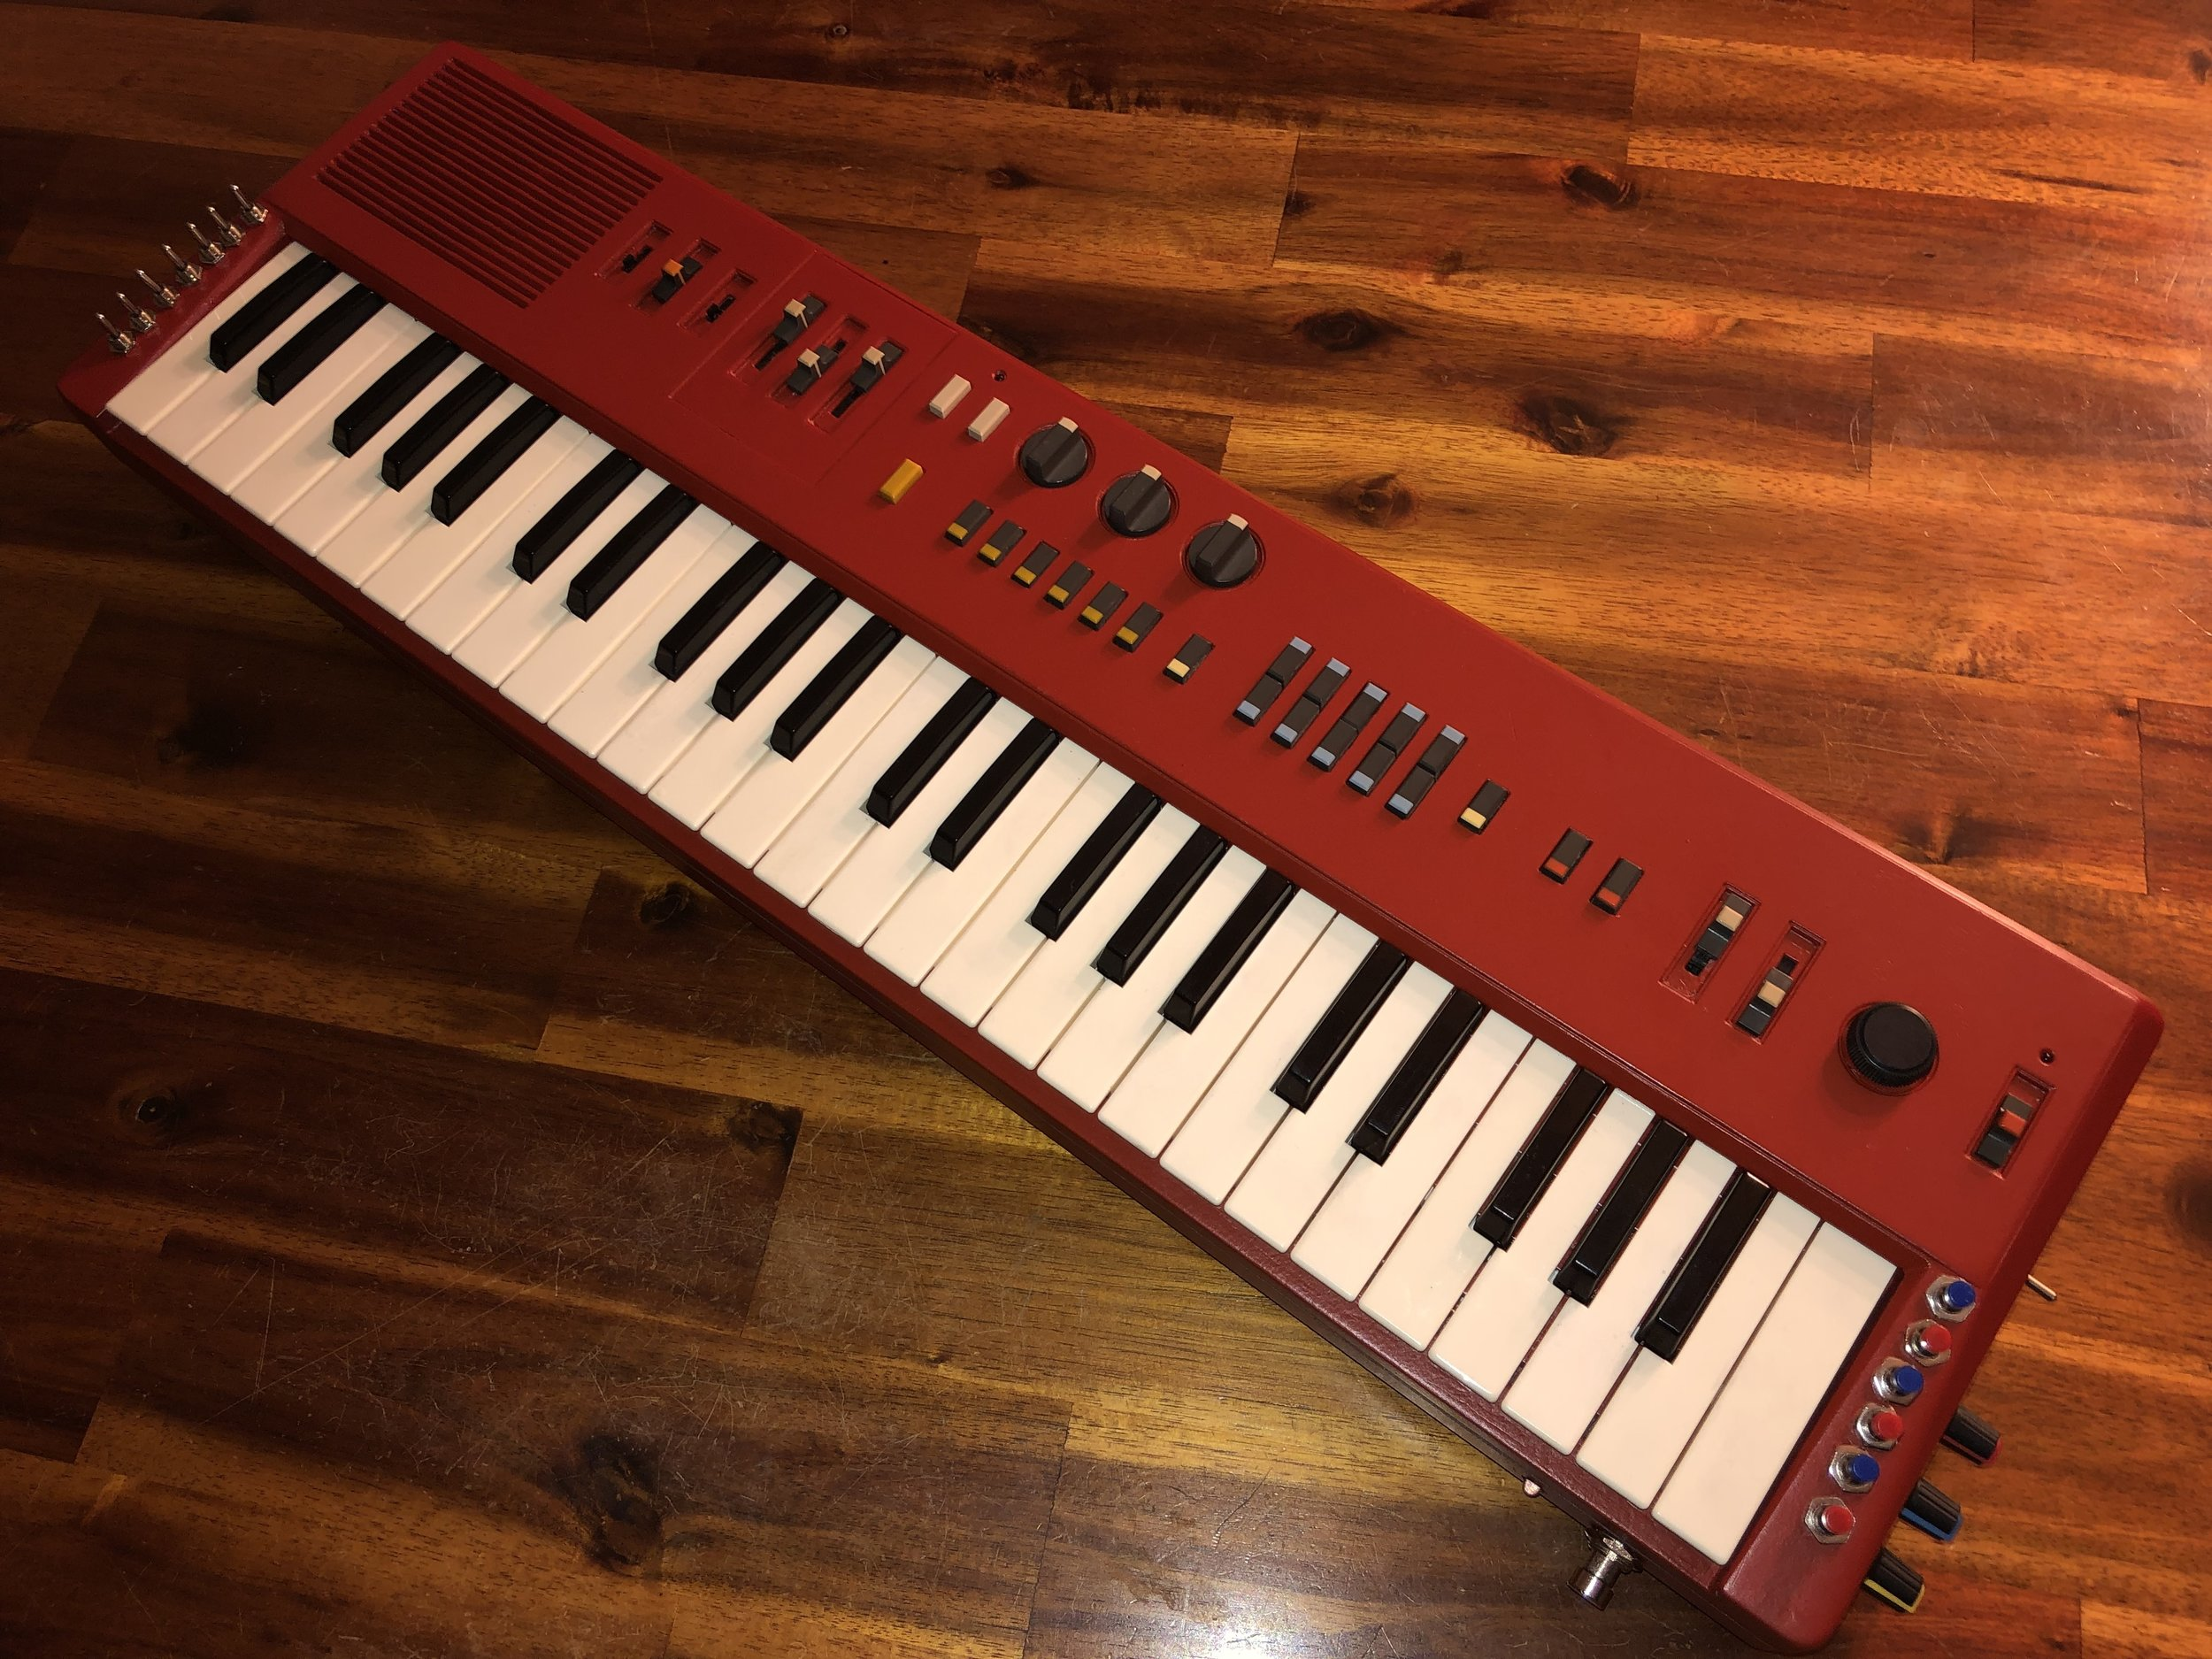 Emergency Red Paint Job on Casiotone MT-68